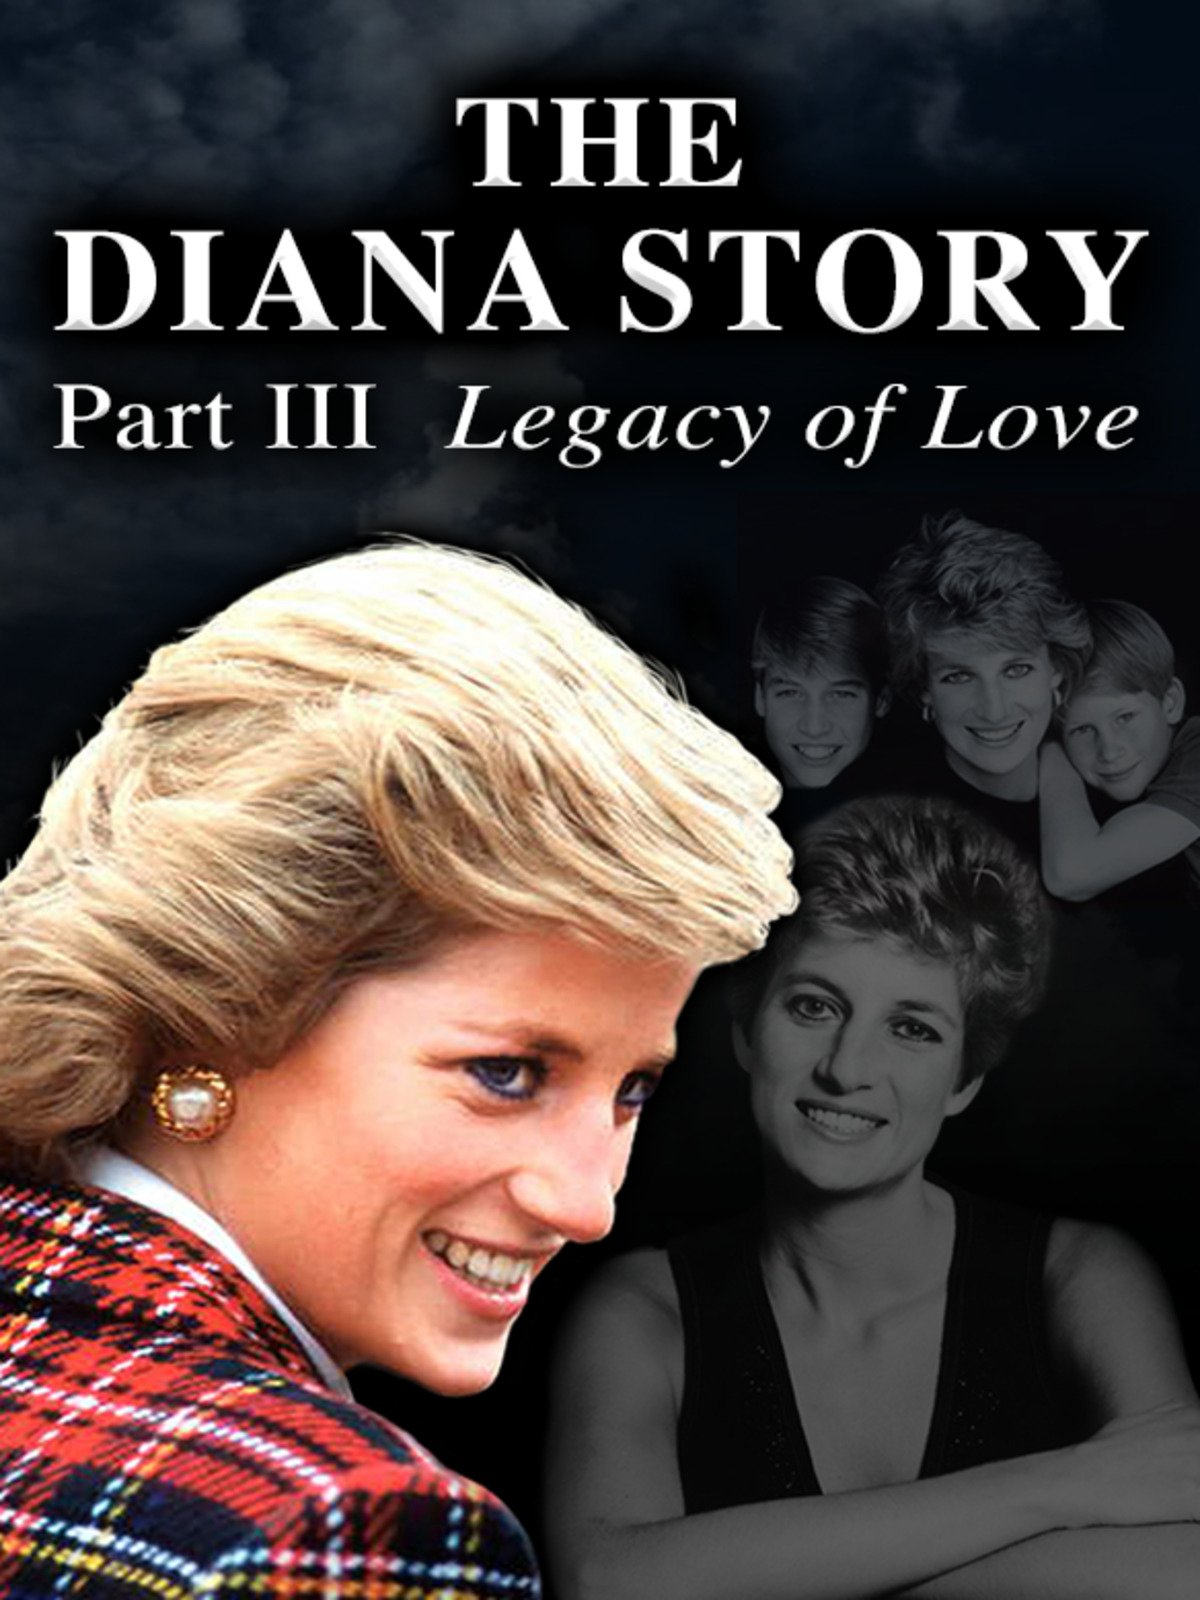 The Diana Story: Part III: Legacy of Love